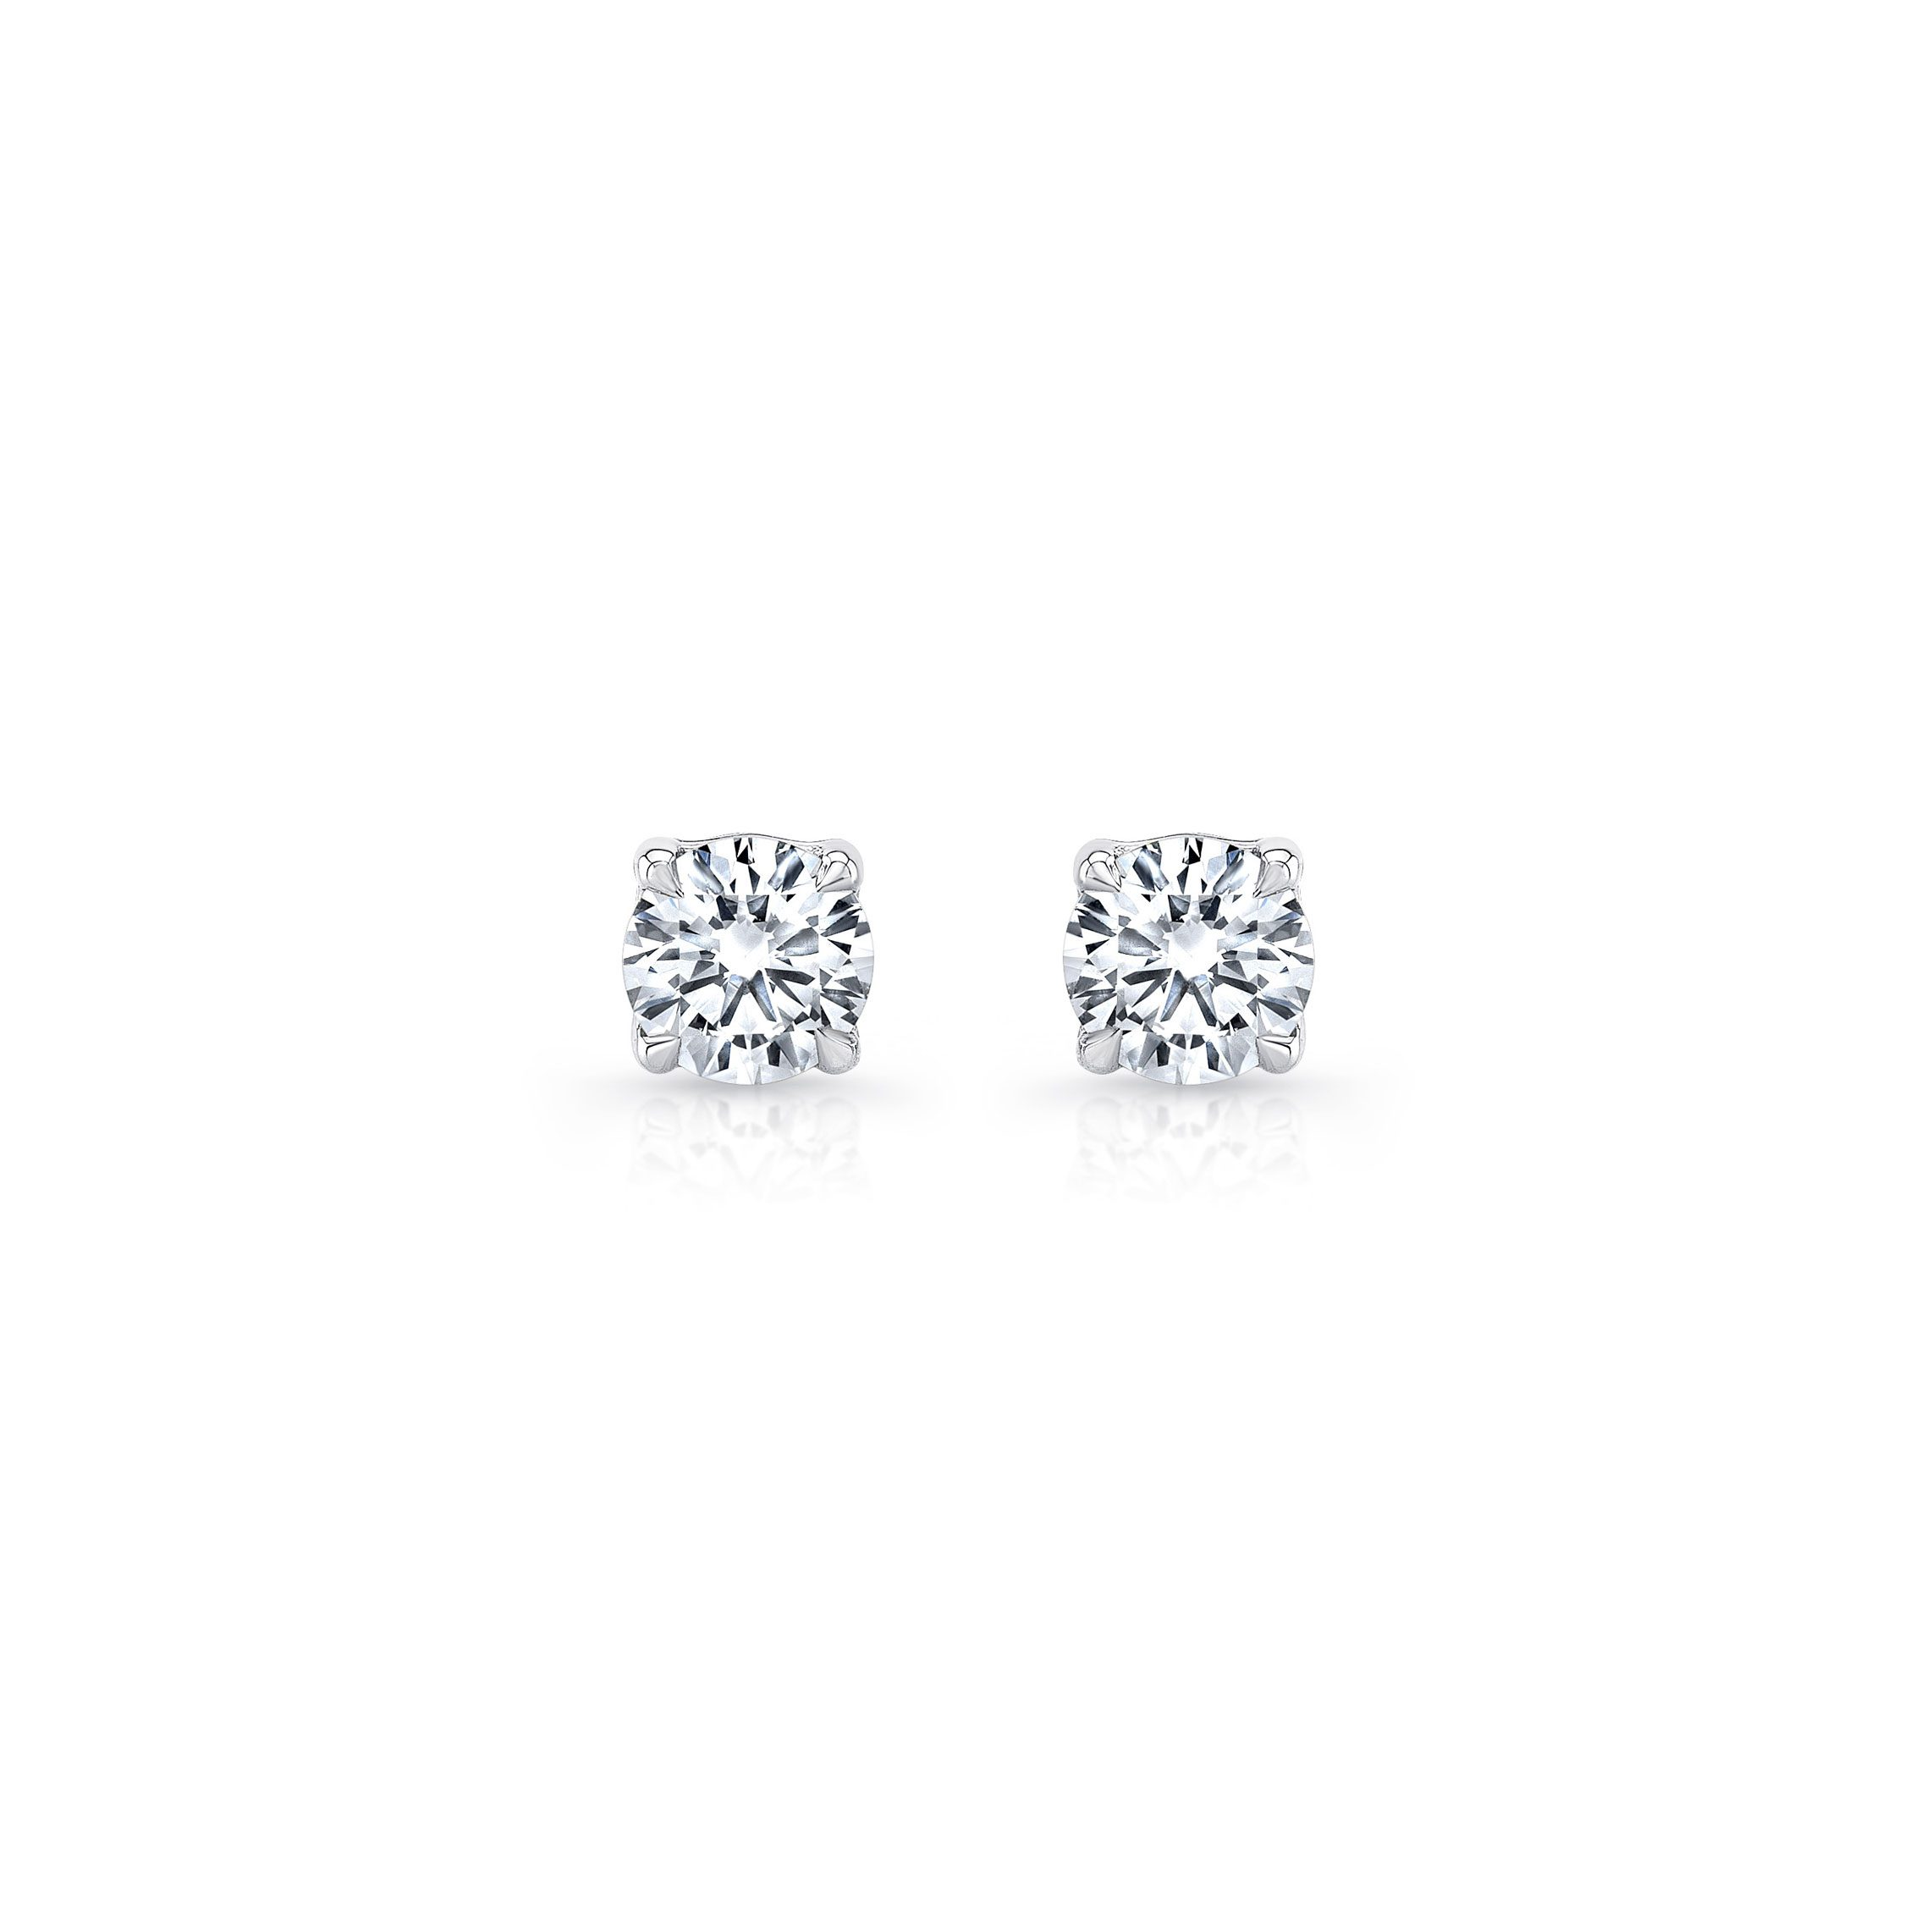 La Petite Round Brilliant Diamond Stud Earrings in 18k White Gold Front View by Oui by Jean Dousset